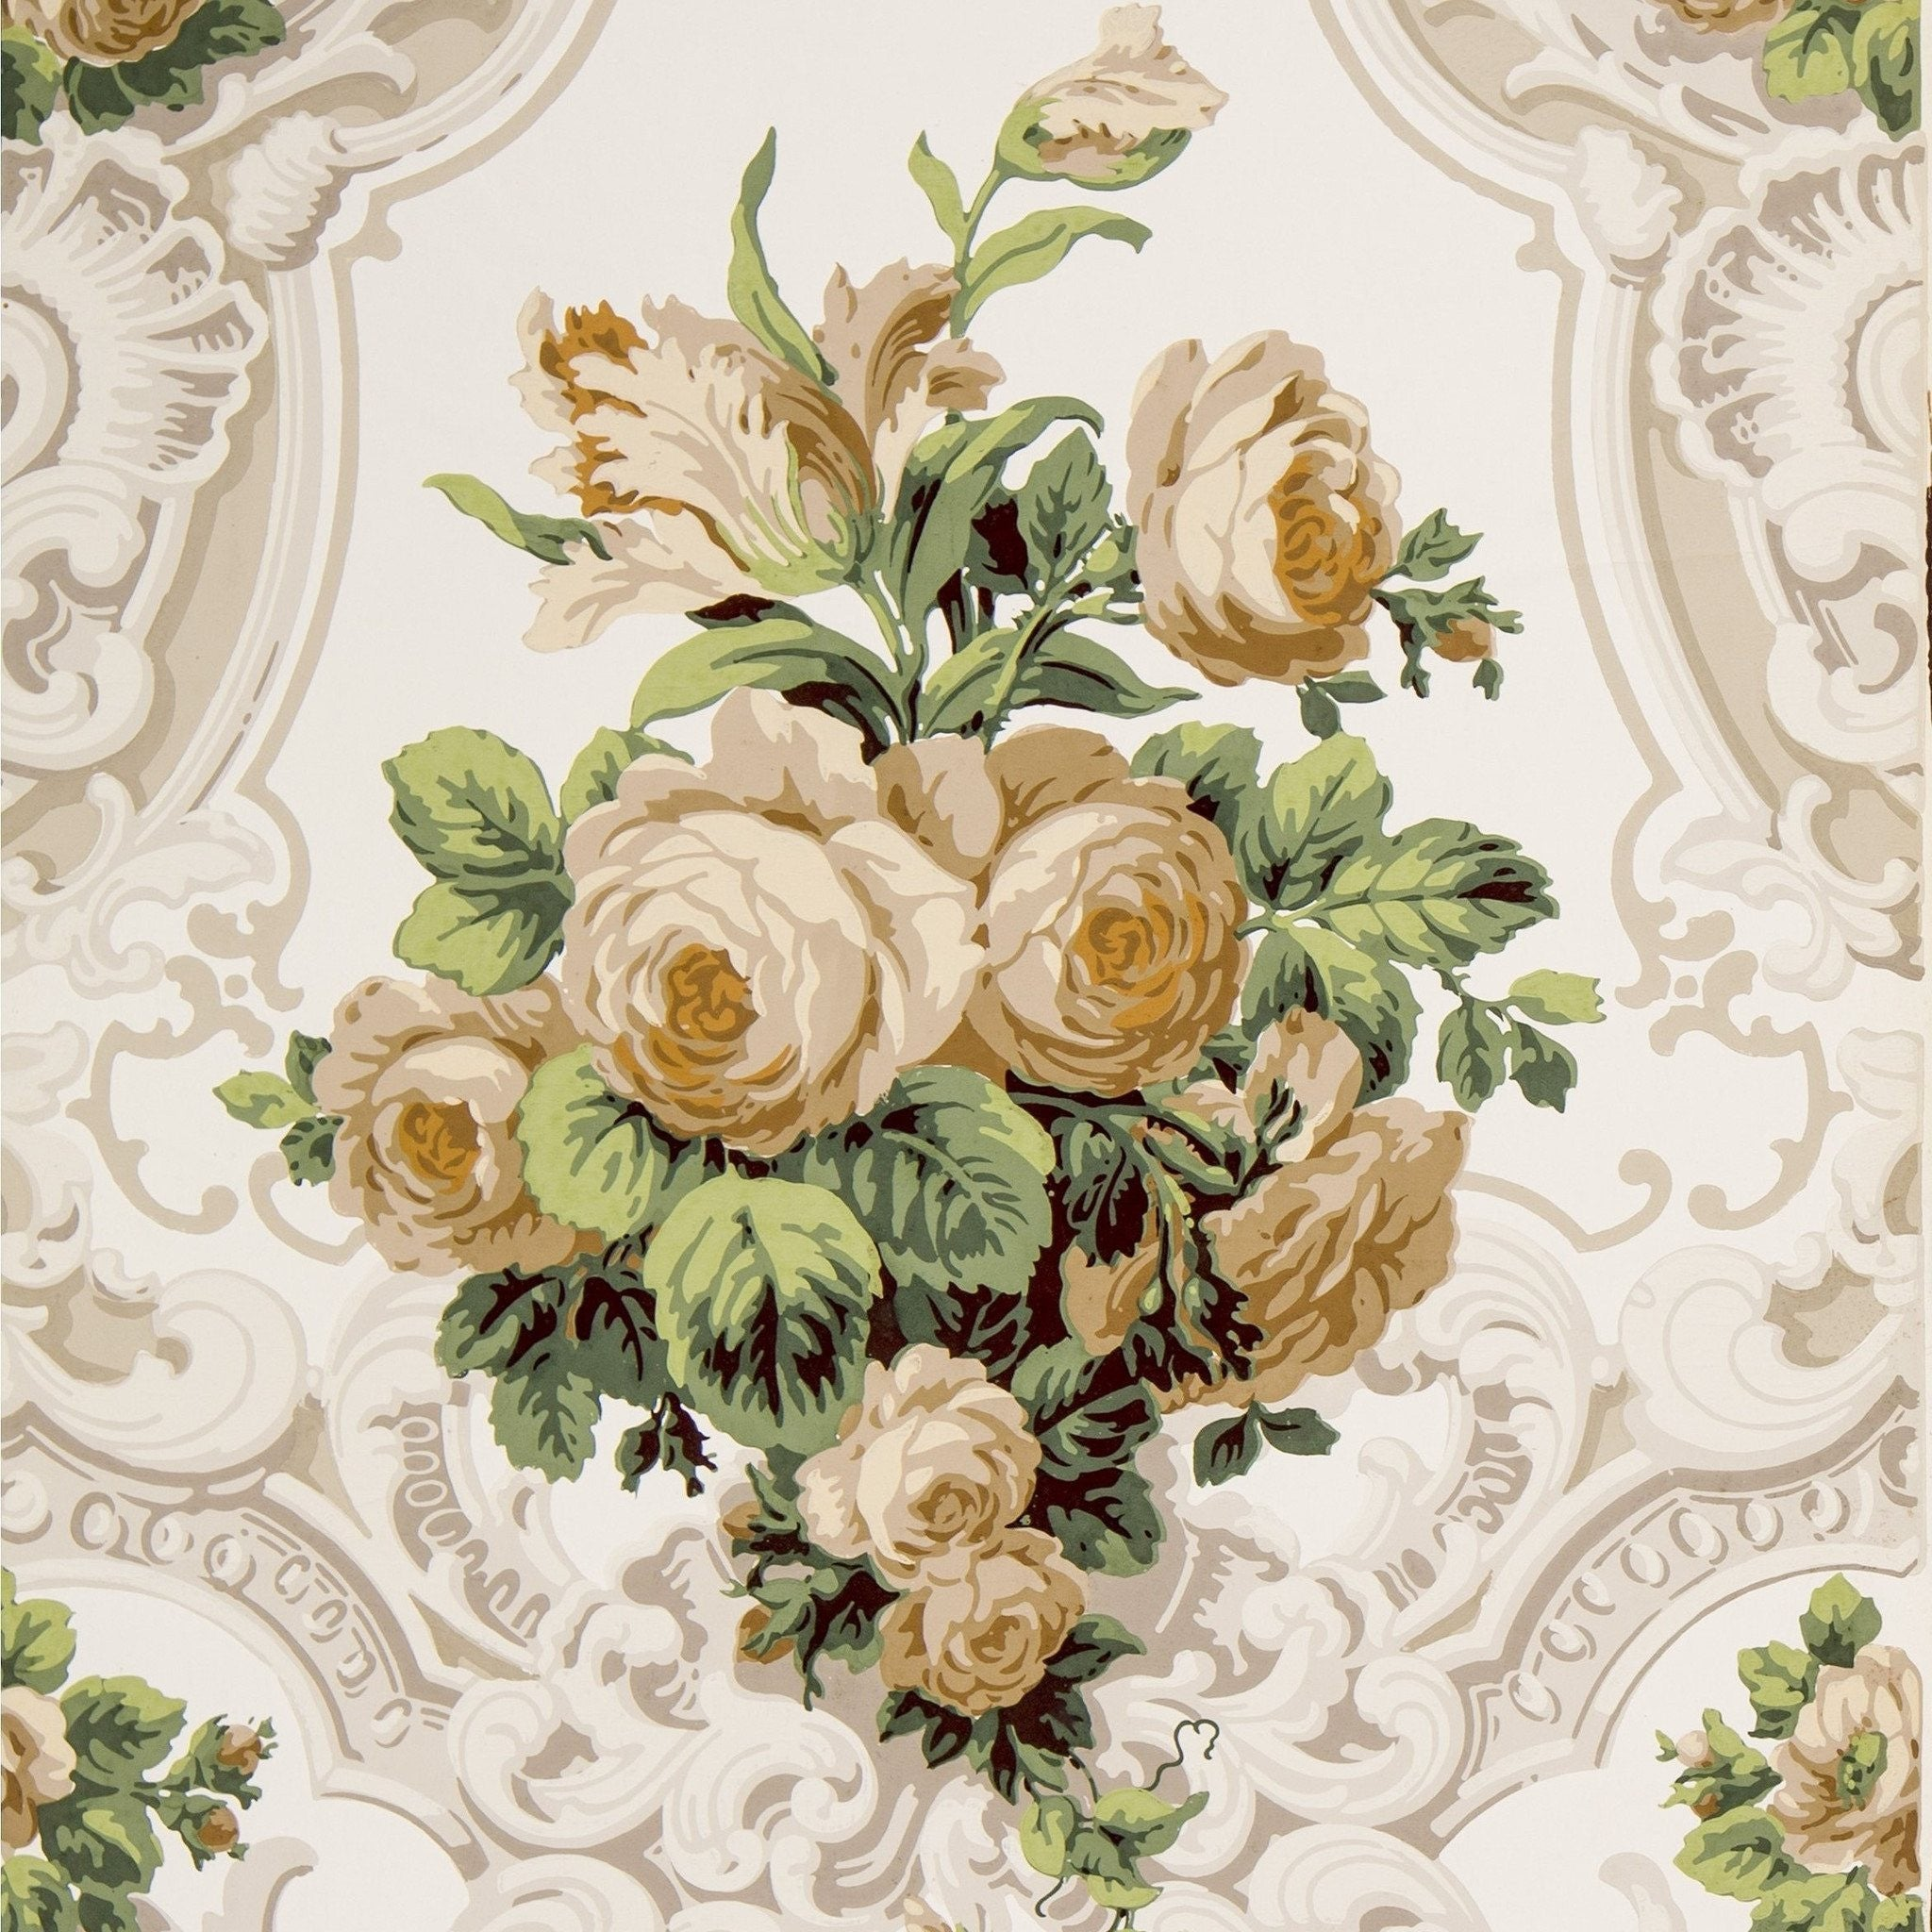 Large Rose Bouquets In Rococo Scrolls